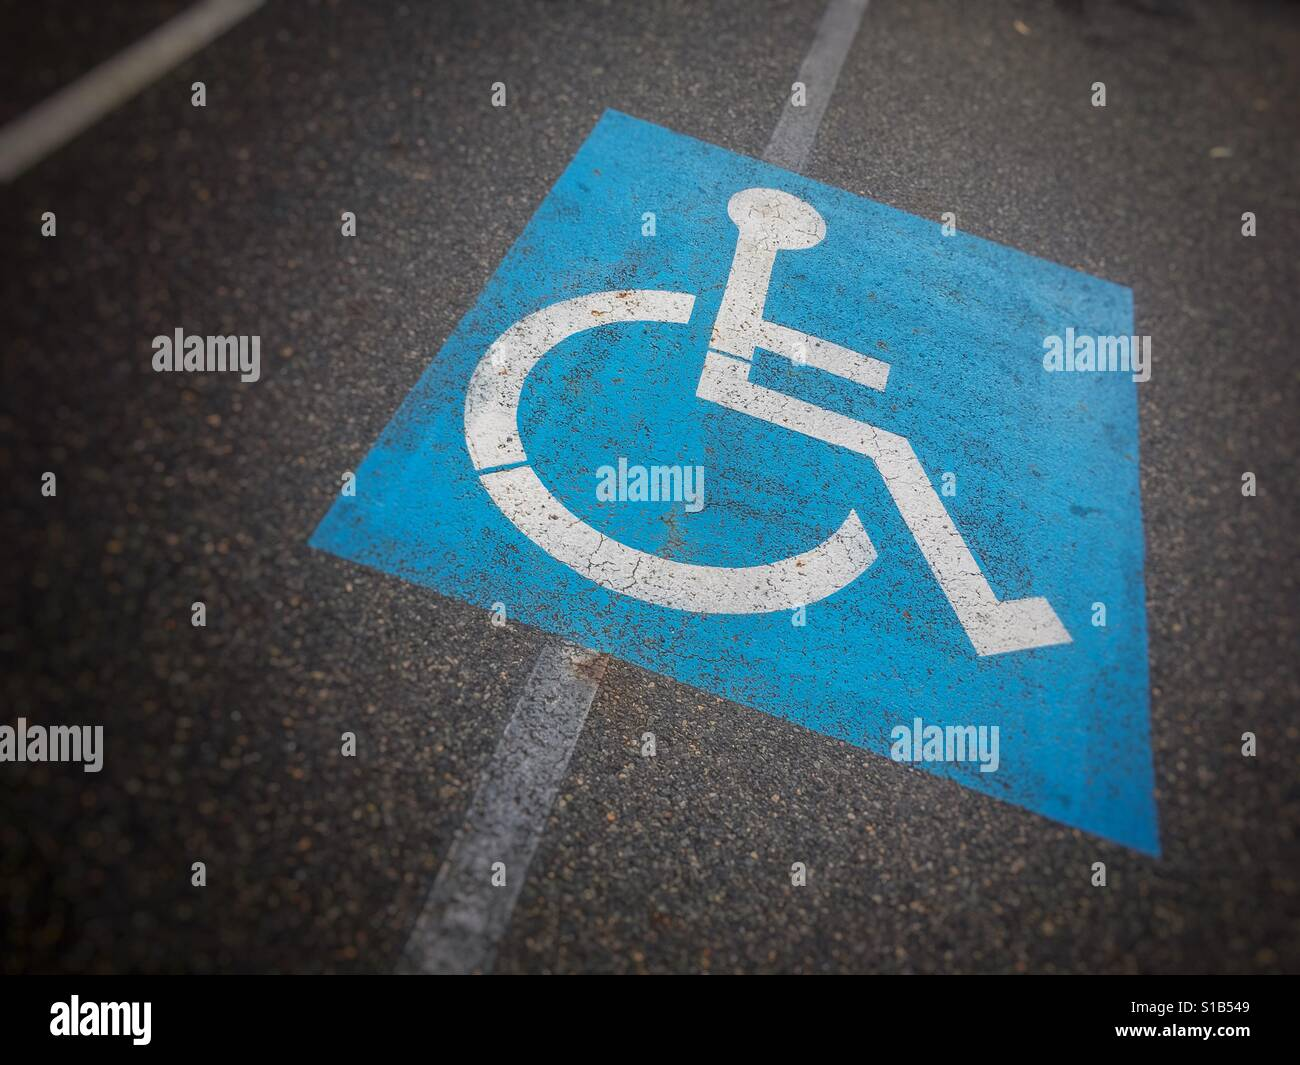 Disabled parking space. - Stock Image